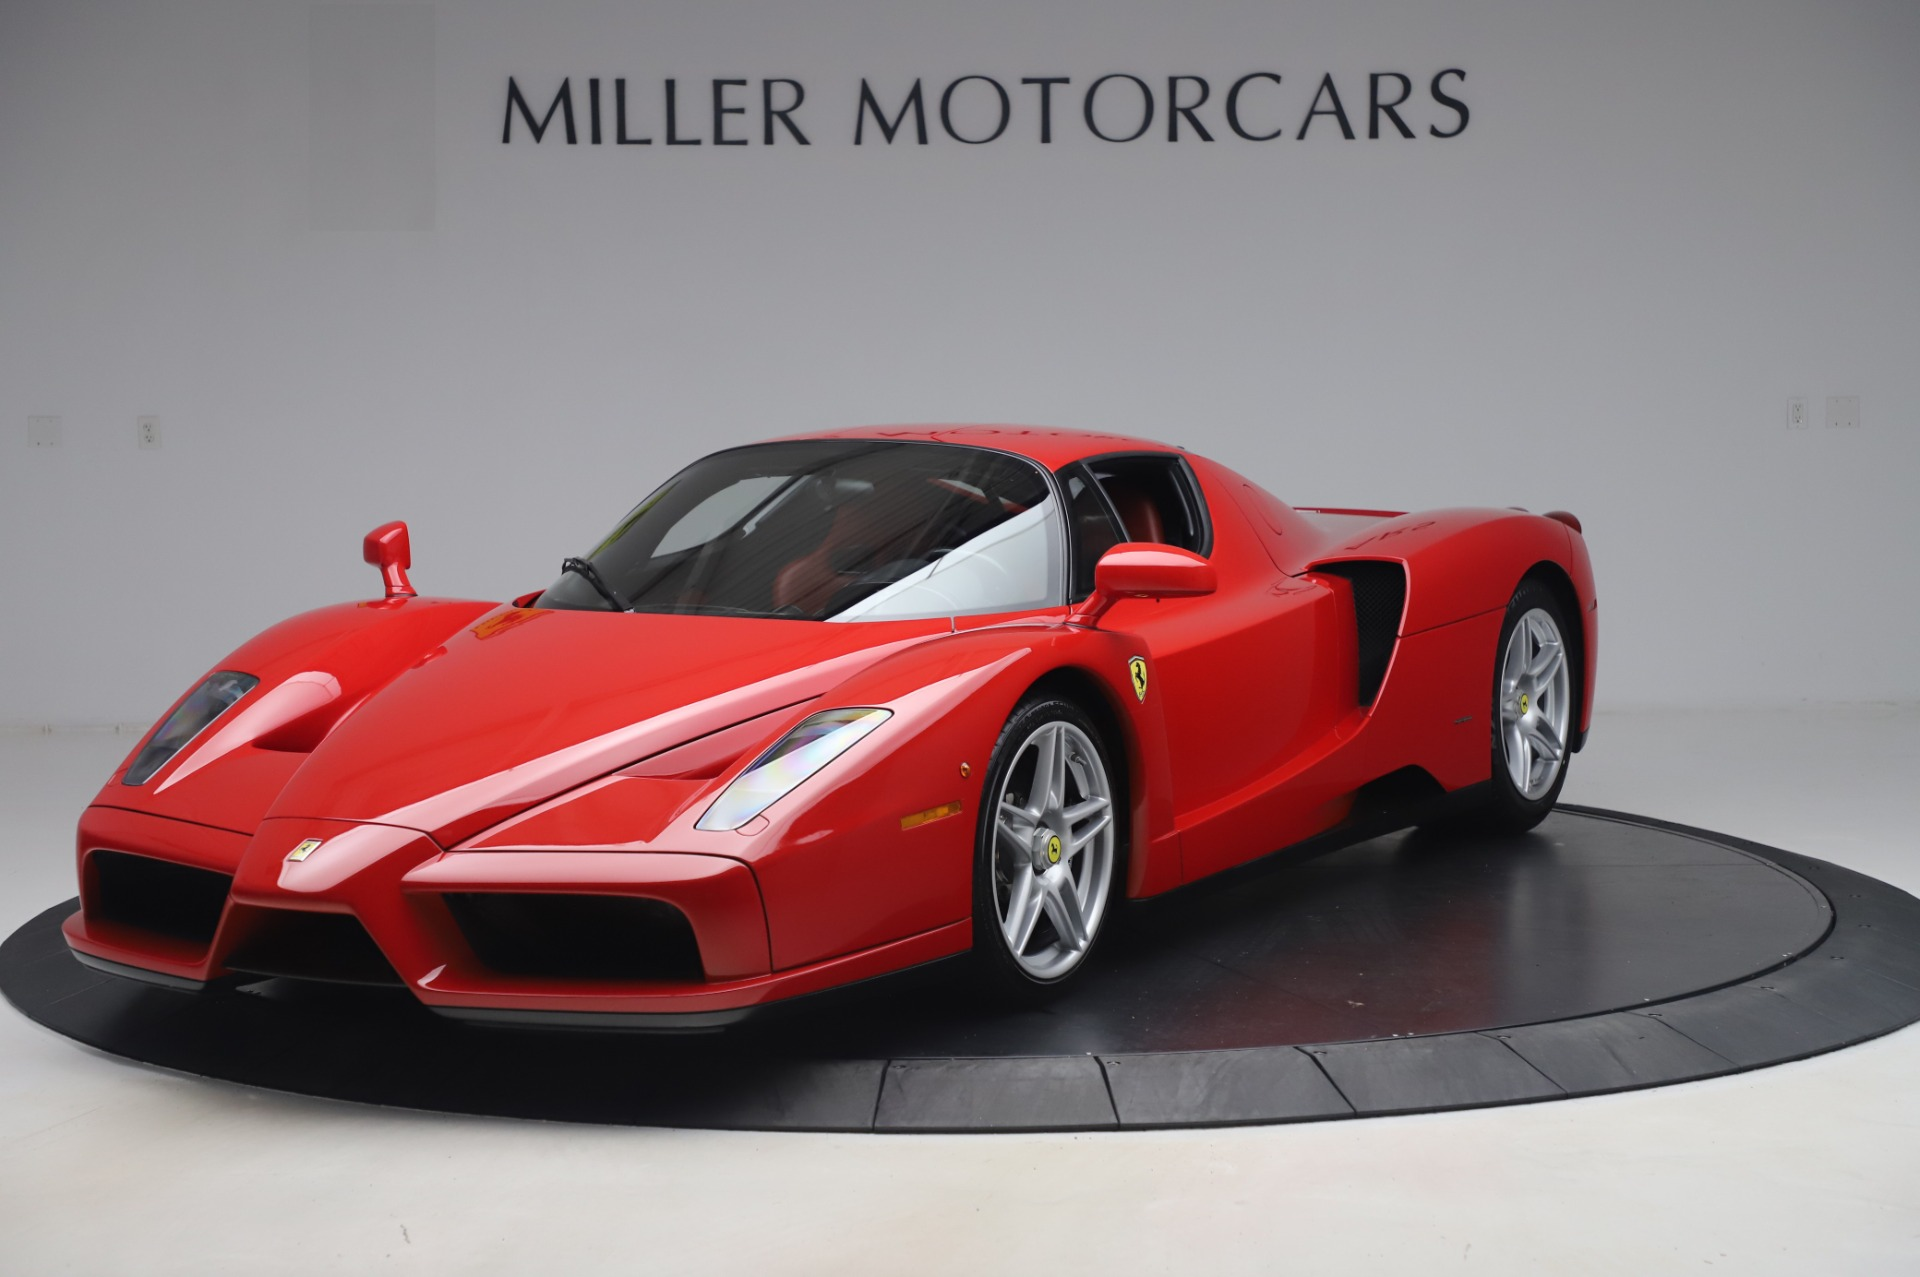 Used 2003 Ferrari Enzo for sale $3,195,000 at Alfa Romeo of Westport in Westport CT 06880 1